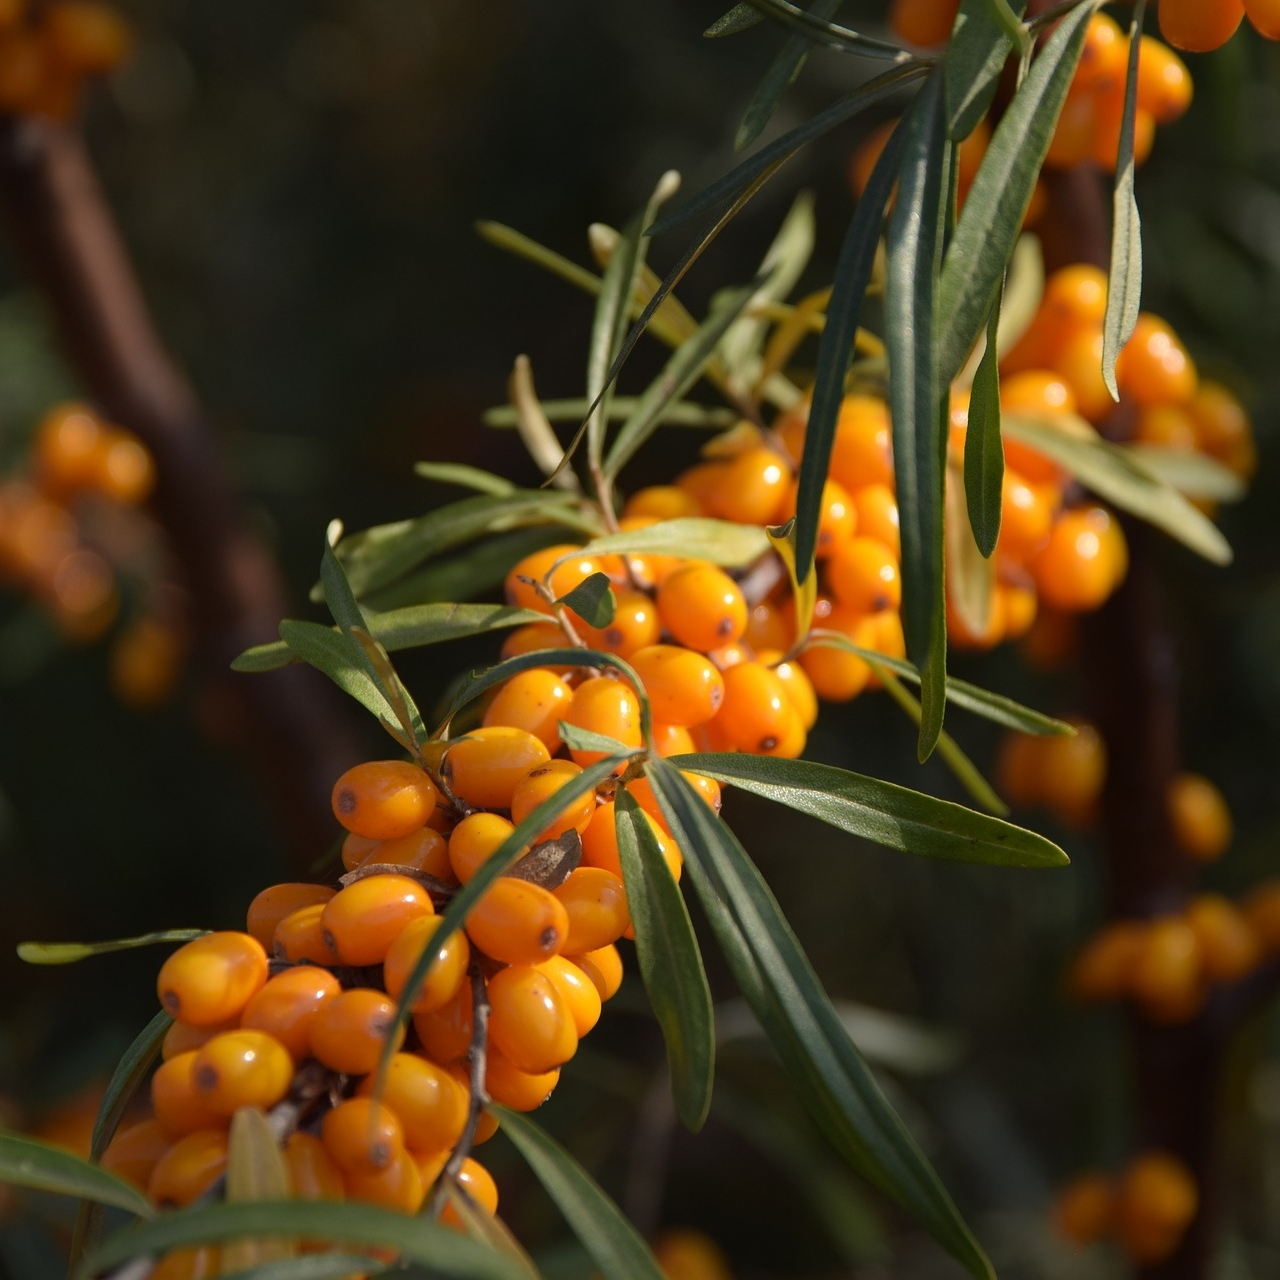 sea-buckthorn-2911630_1920.jpg